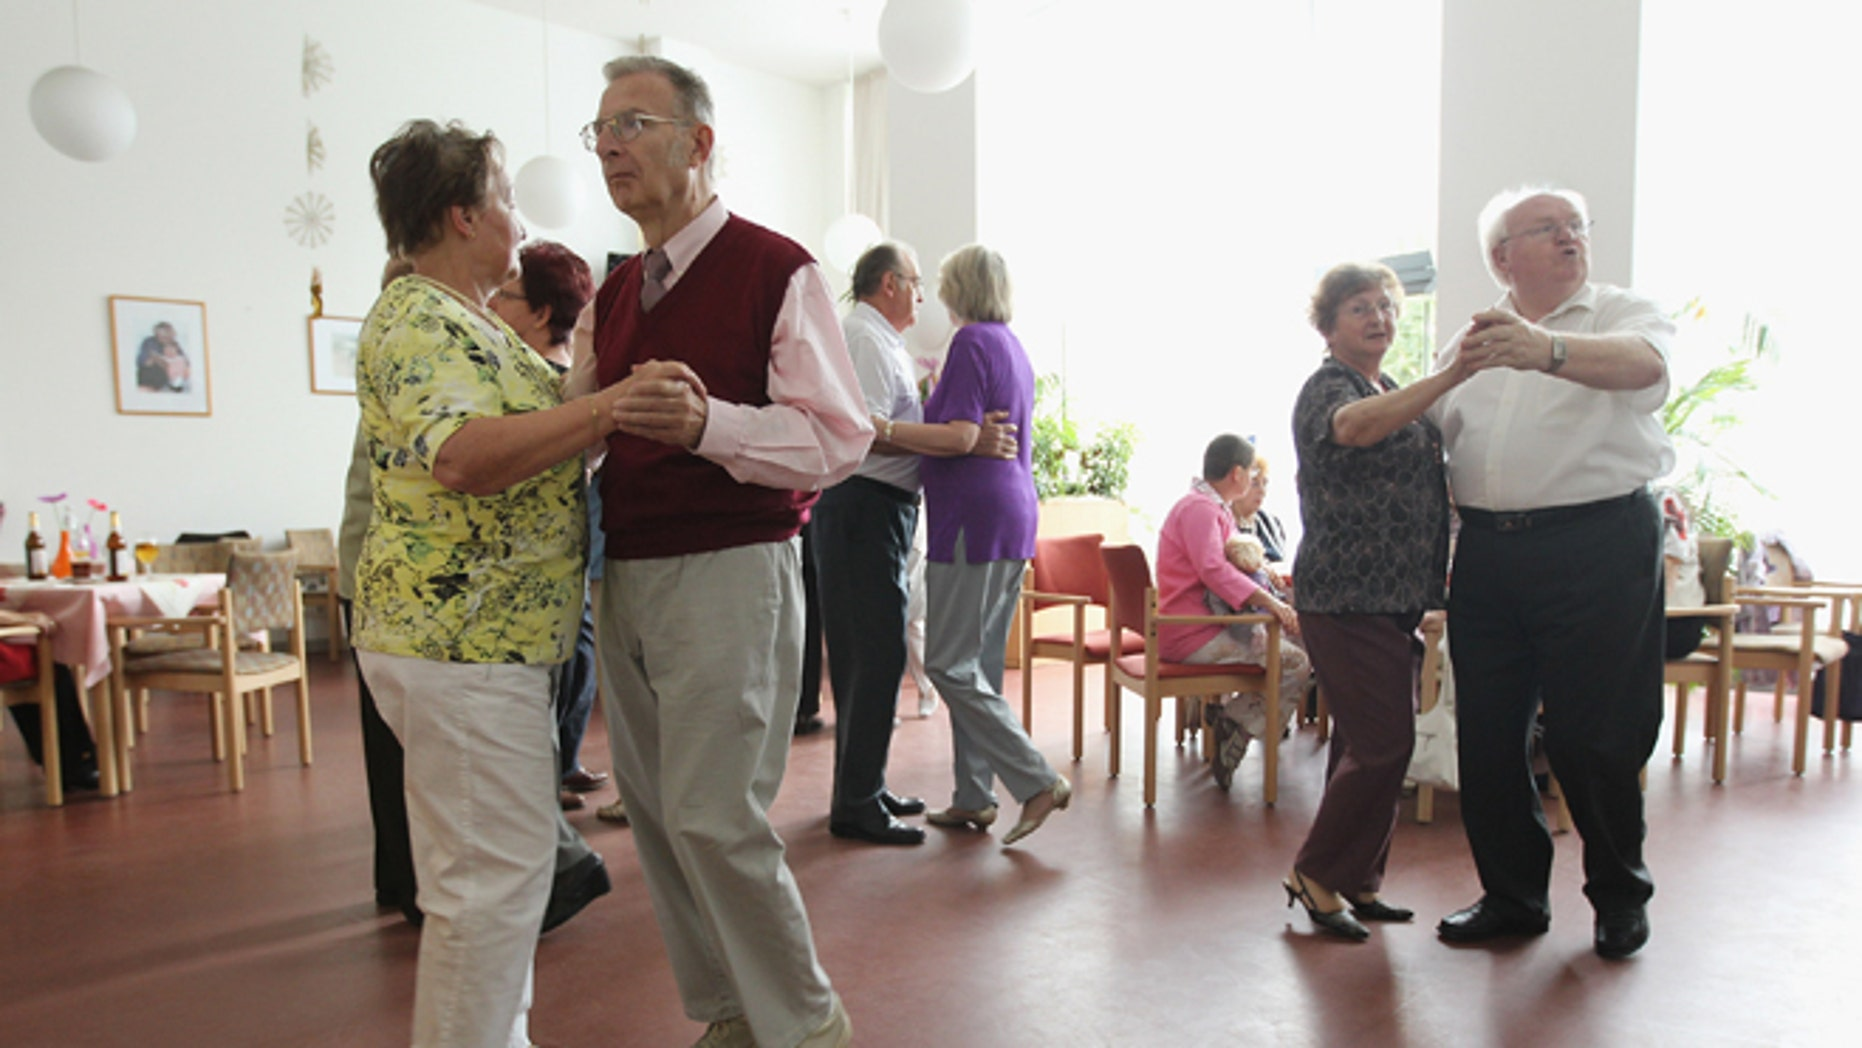 Elderly people dance during an afternoon get-together in the community room of the Sewanstrasse senior care home in Lichtenberg district on August 30, 2011 in Berlin, Germany.